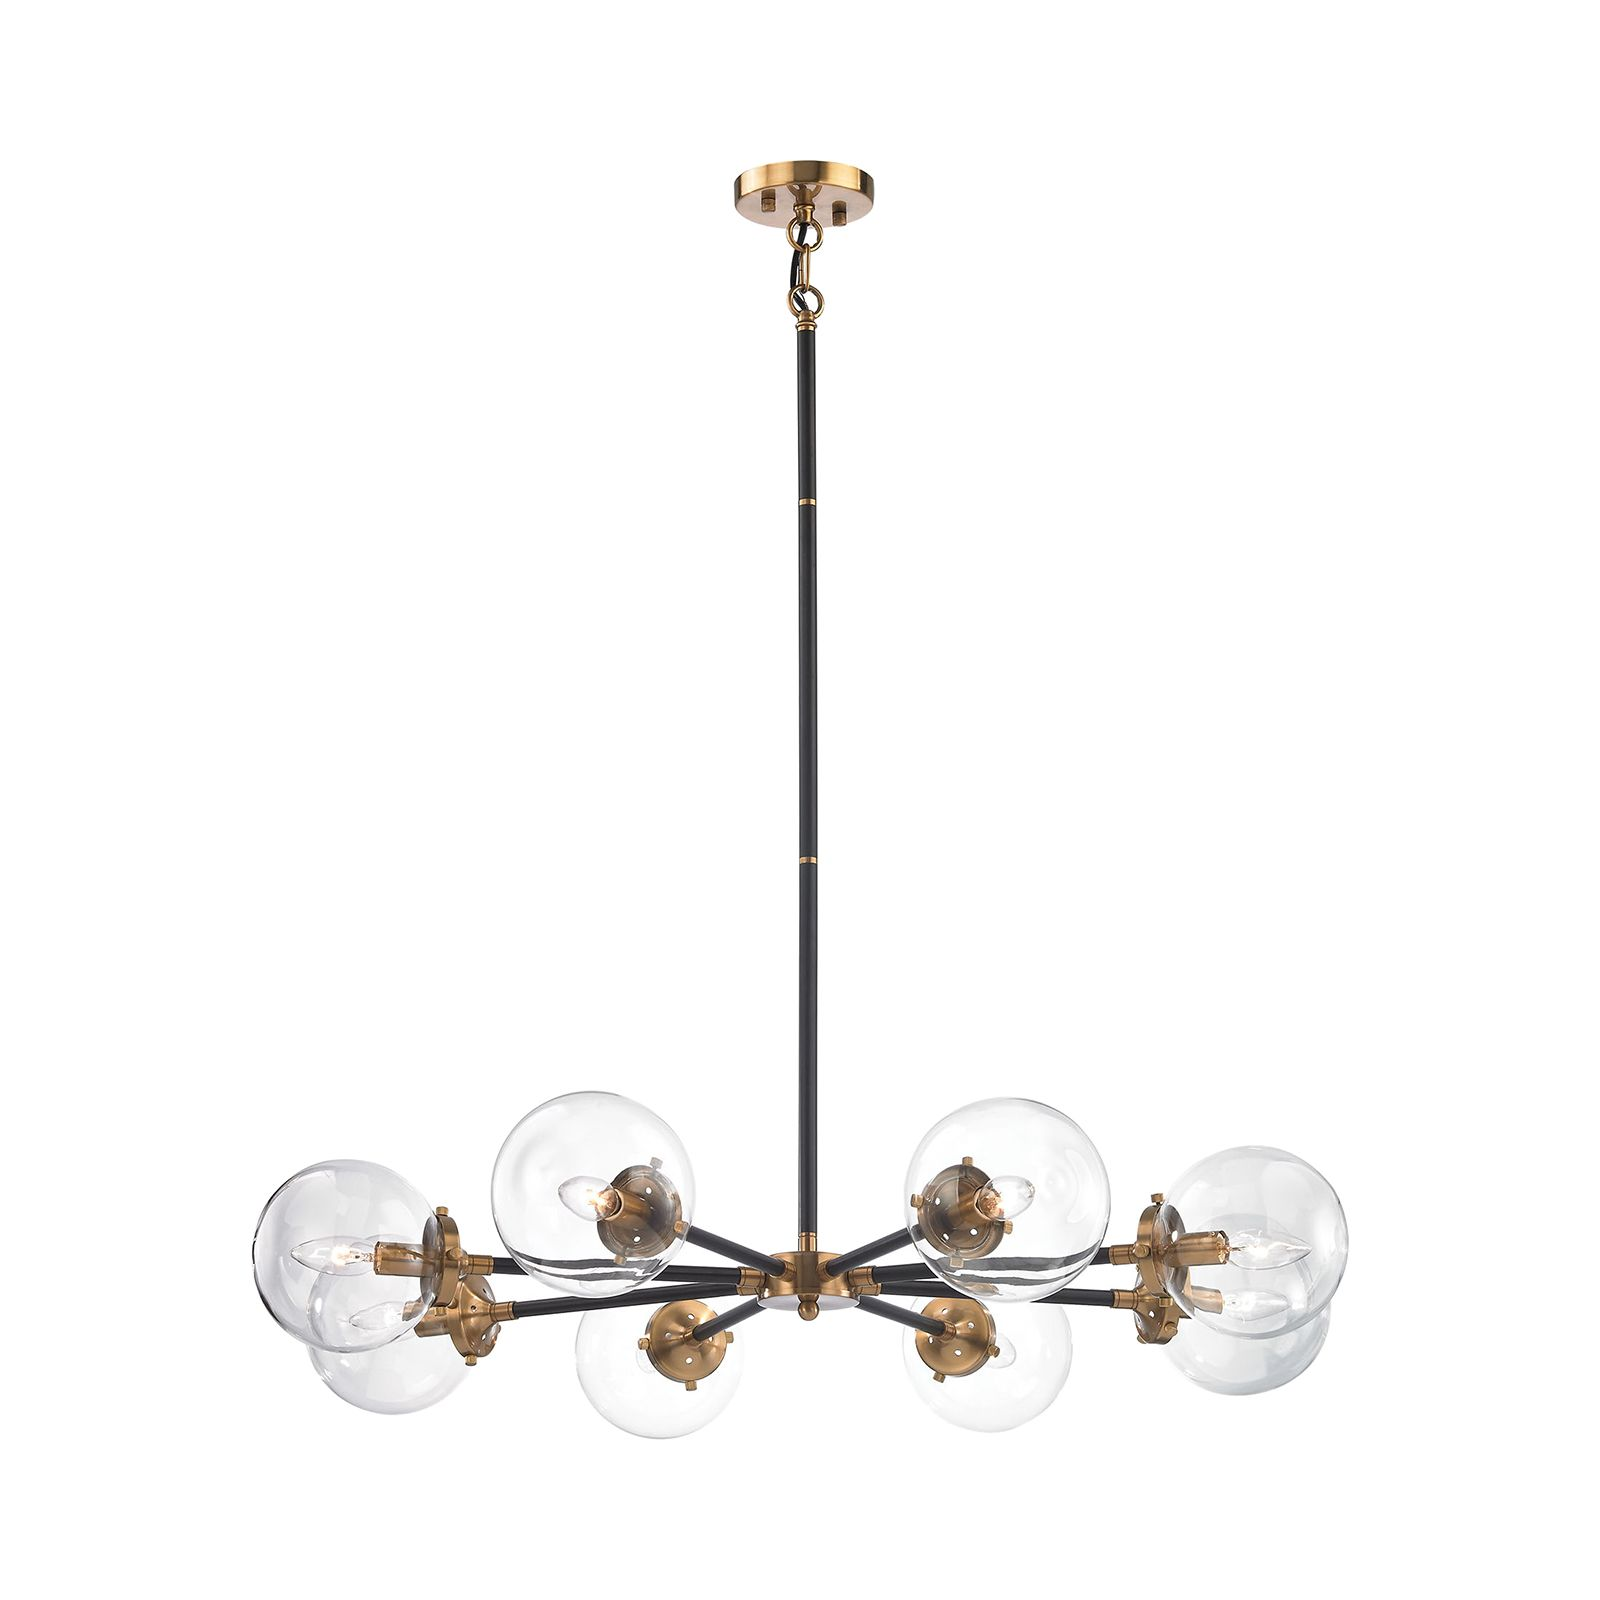 Octavia Candelabra lighting Pinterest